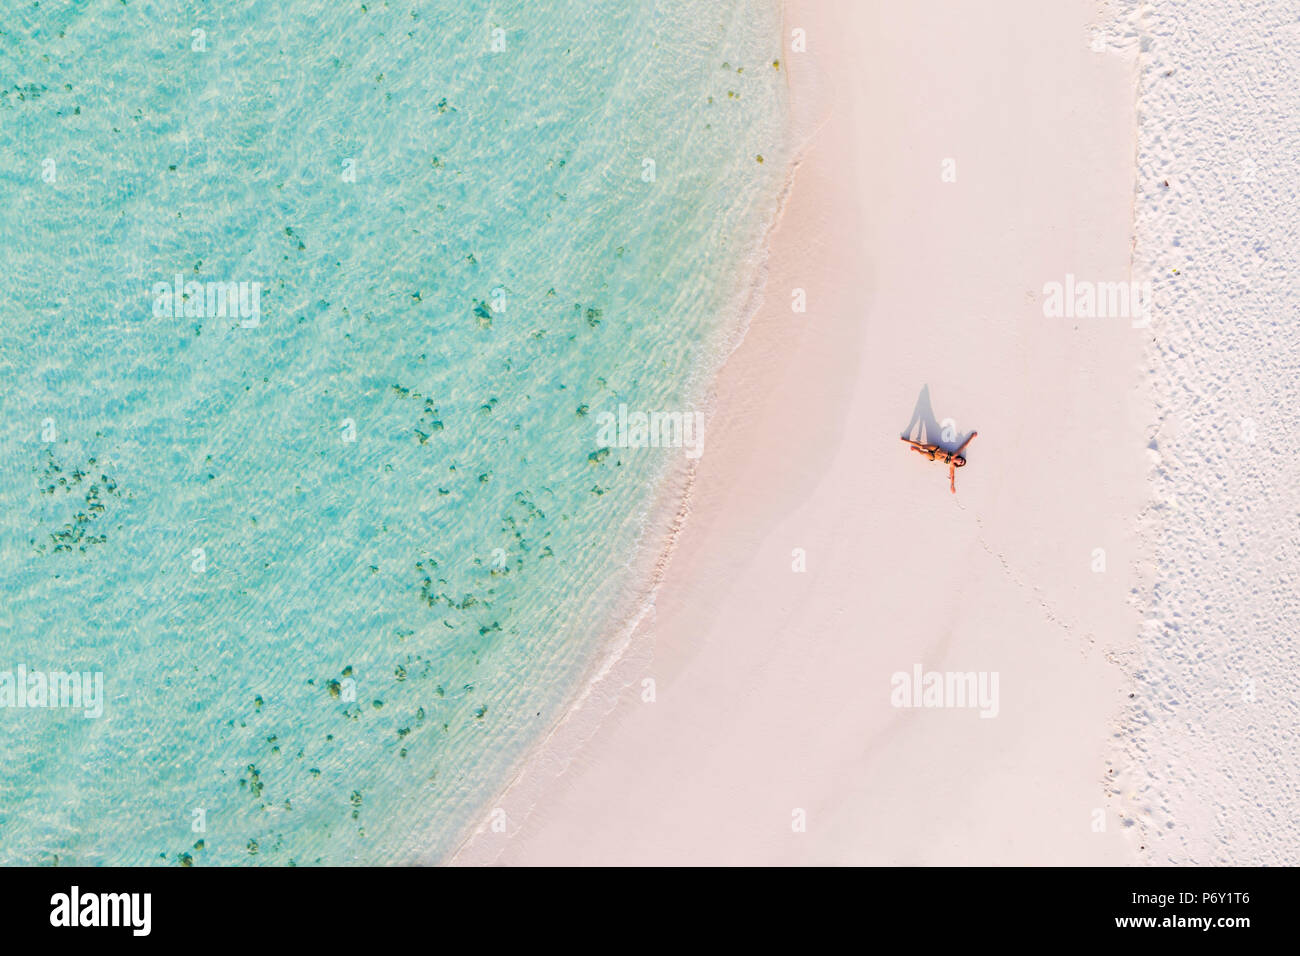 Aerial drone view of woman on a sandy beach, Maldives (MR) - Stock Image